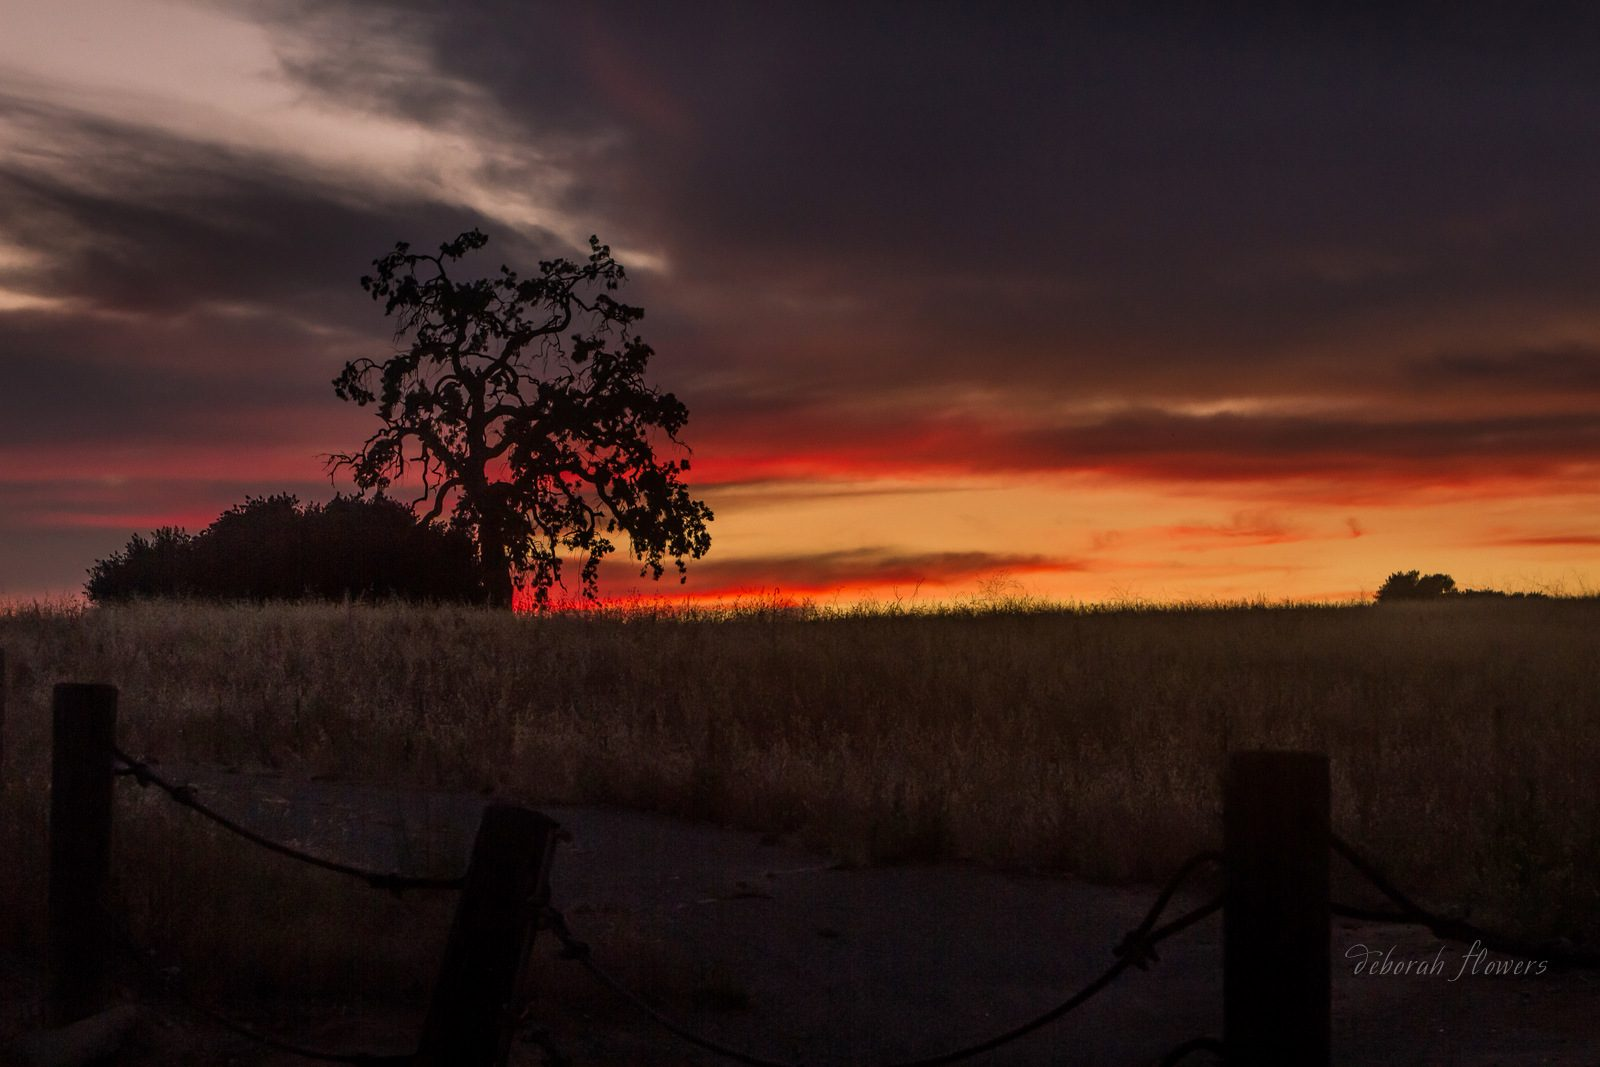 """""""Sunset, Silhouette, and a Little Foreground Too,"""" by Deborah Flowers."""